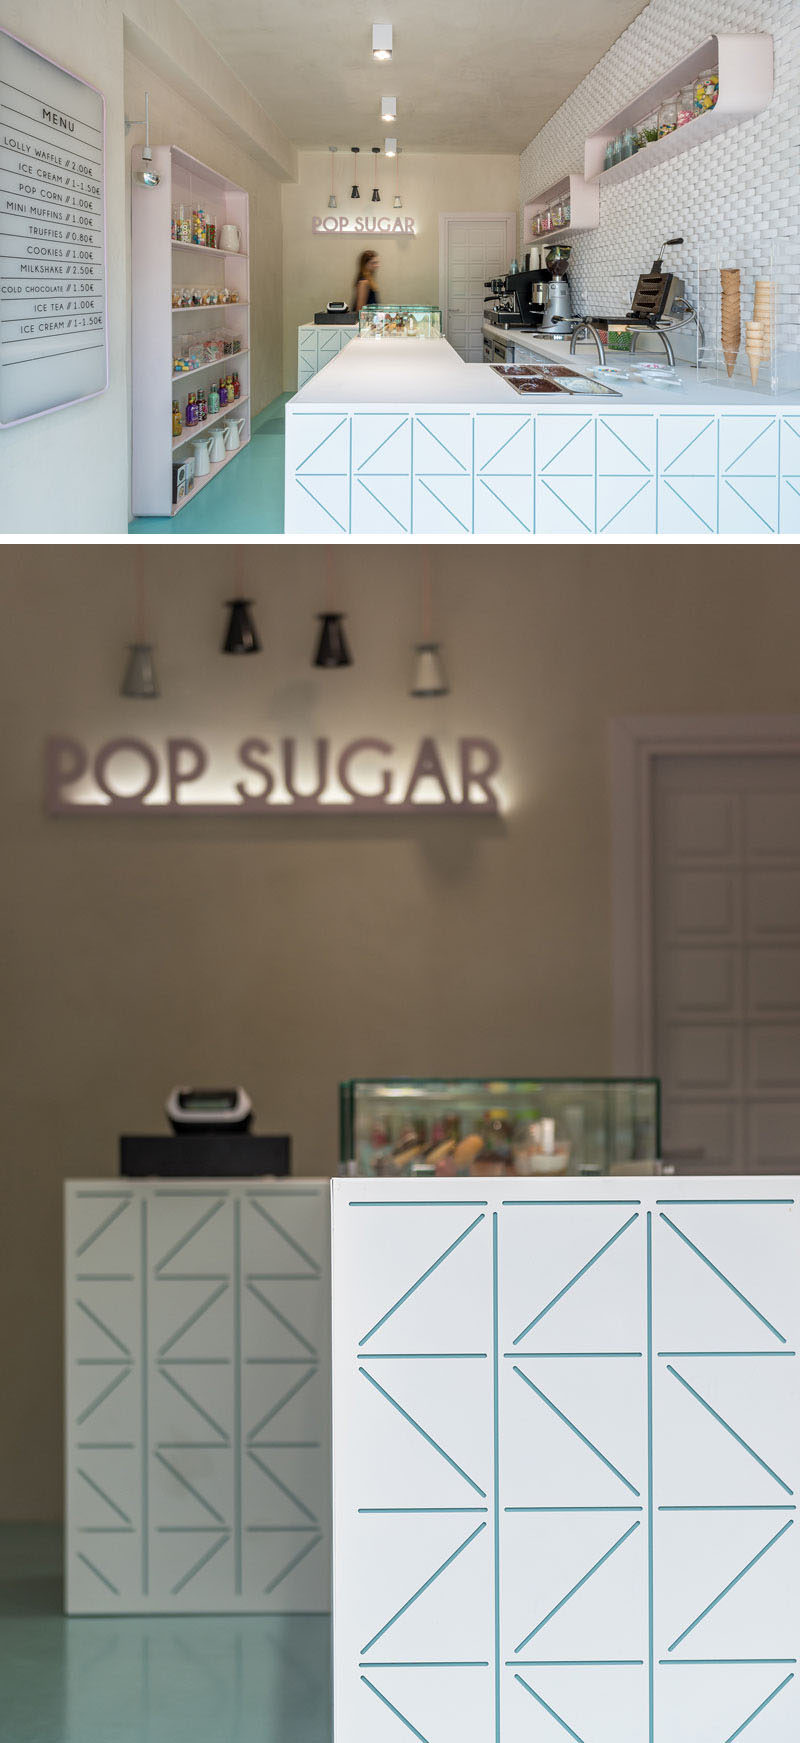 NORMLESS Architecture Studio have recently completed the design of Pop Sugar, a tiny sweet shop in the seaside village of Stavros in Greece. #SweetStore #InteriorDesign #RetailDesign